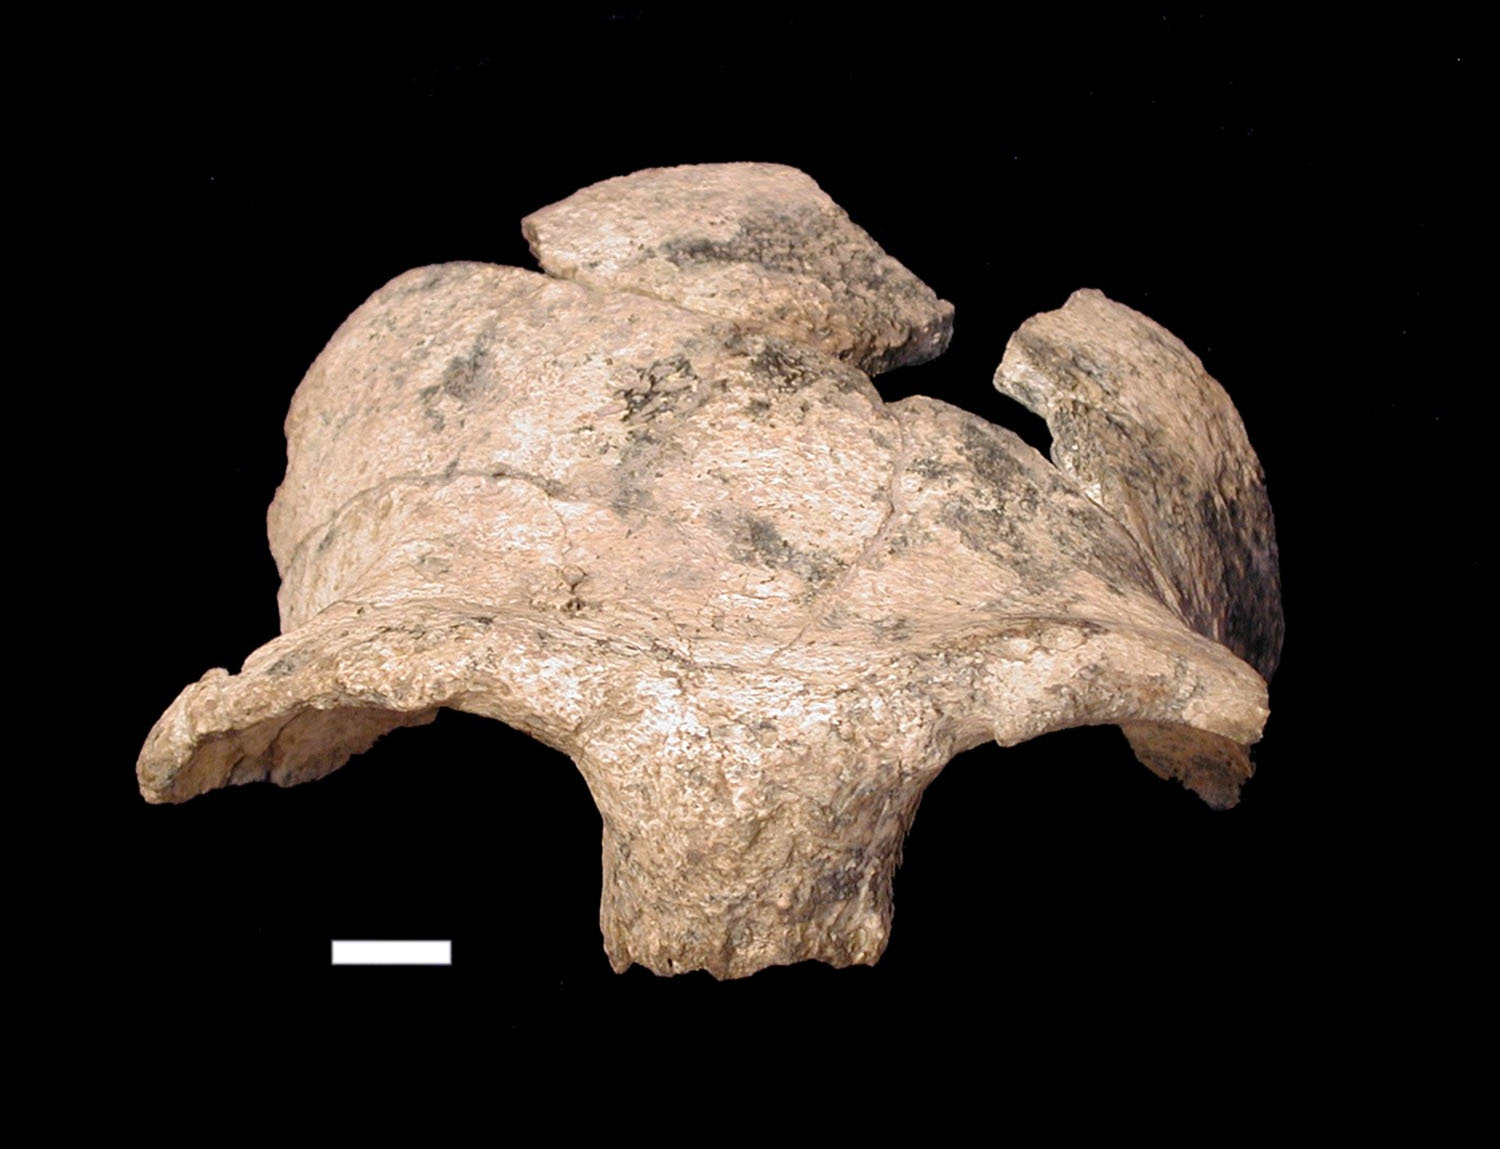 The frontal bone, including the brow ridge, of the hominin skull from Olorgesailie (KNM-OG 45500). Image courtesy of Jennifer Clark and Richard Potts, Smithsonian Institution.